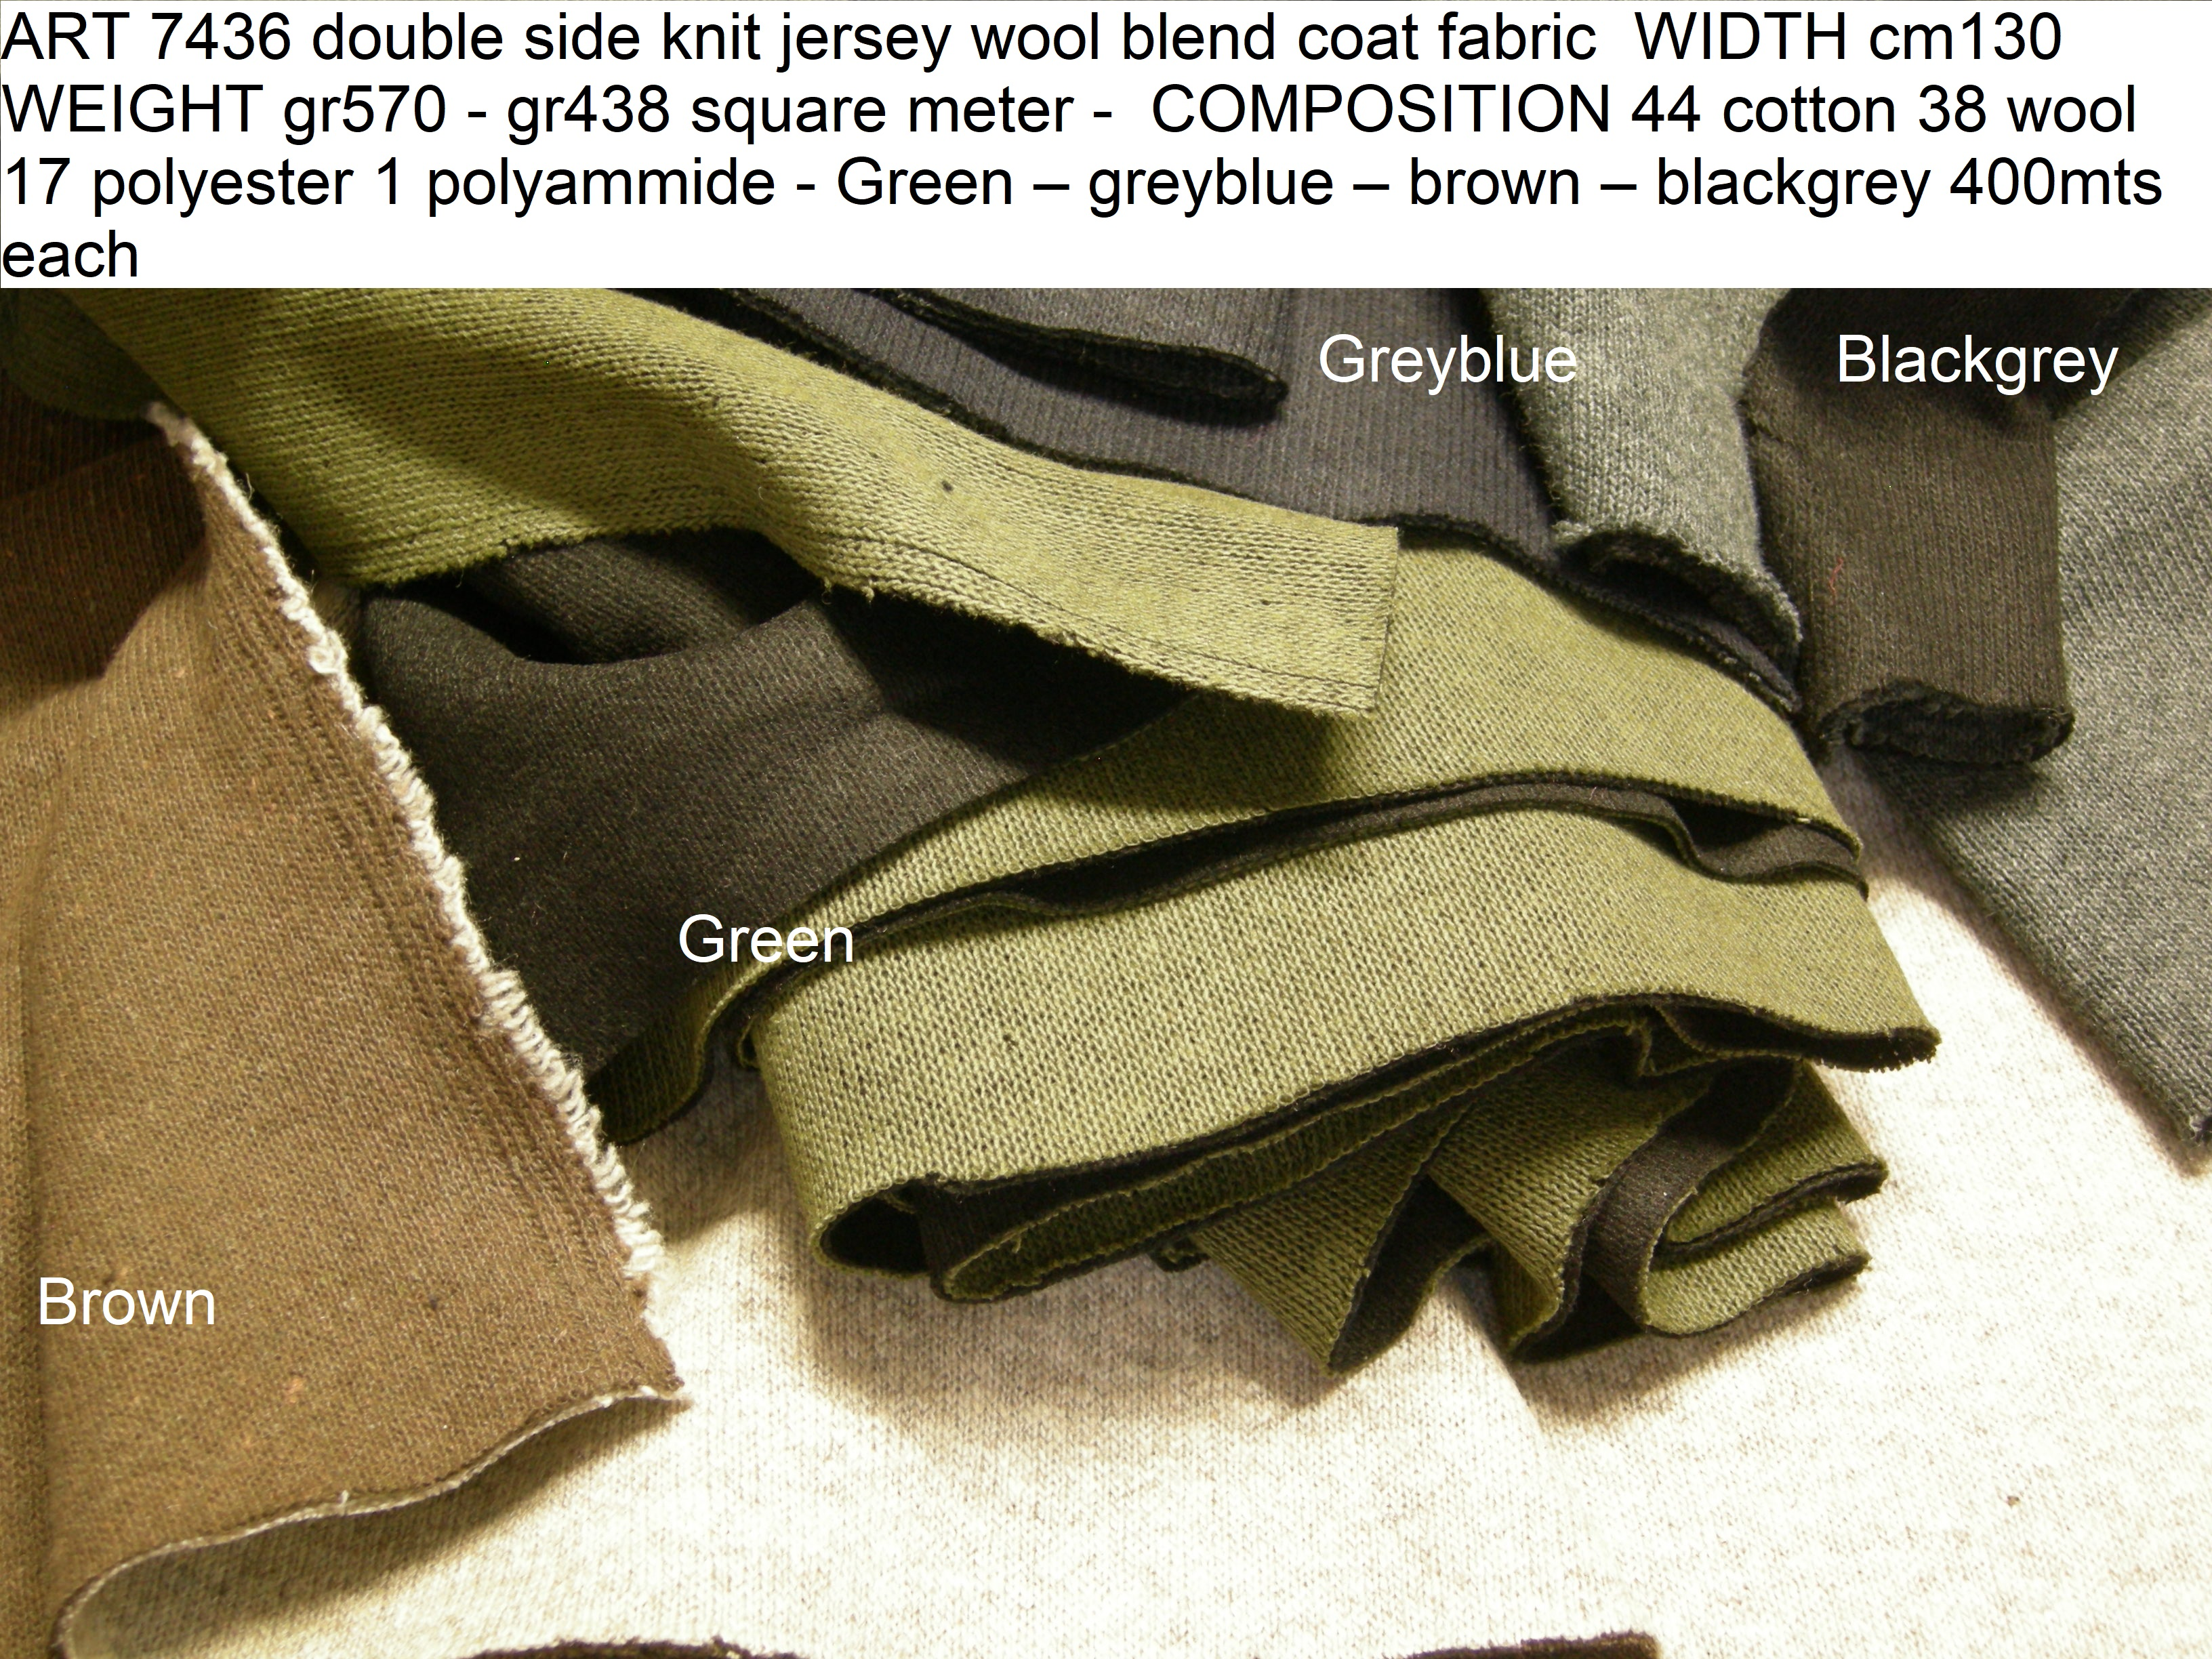 ART 7436 double side knit jersey coat fabric WIDTH cm130 WEIGHT gr570 - gr438 square meter - COMPOSITION 44 cotton 38 wool 17 polyester 1 polyammide - Green – greyblue – brown – blackgrey 400mts each